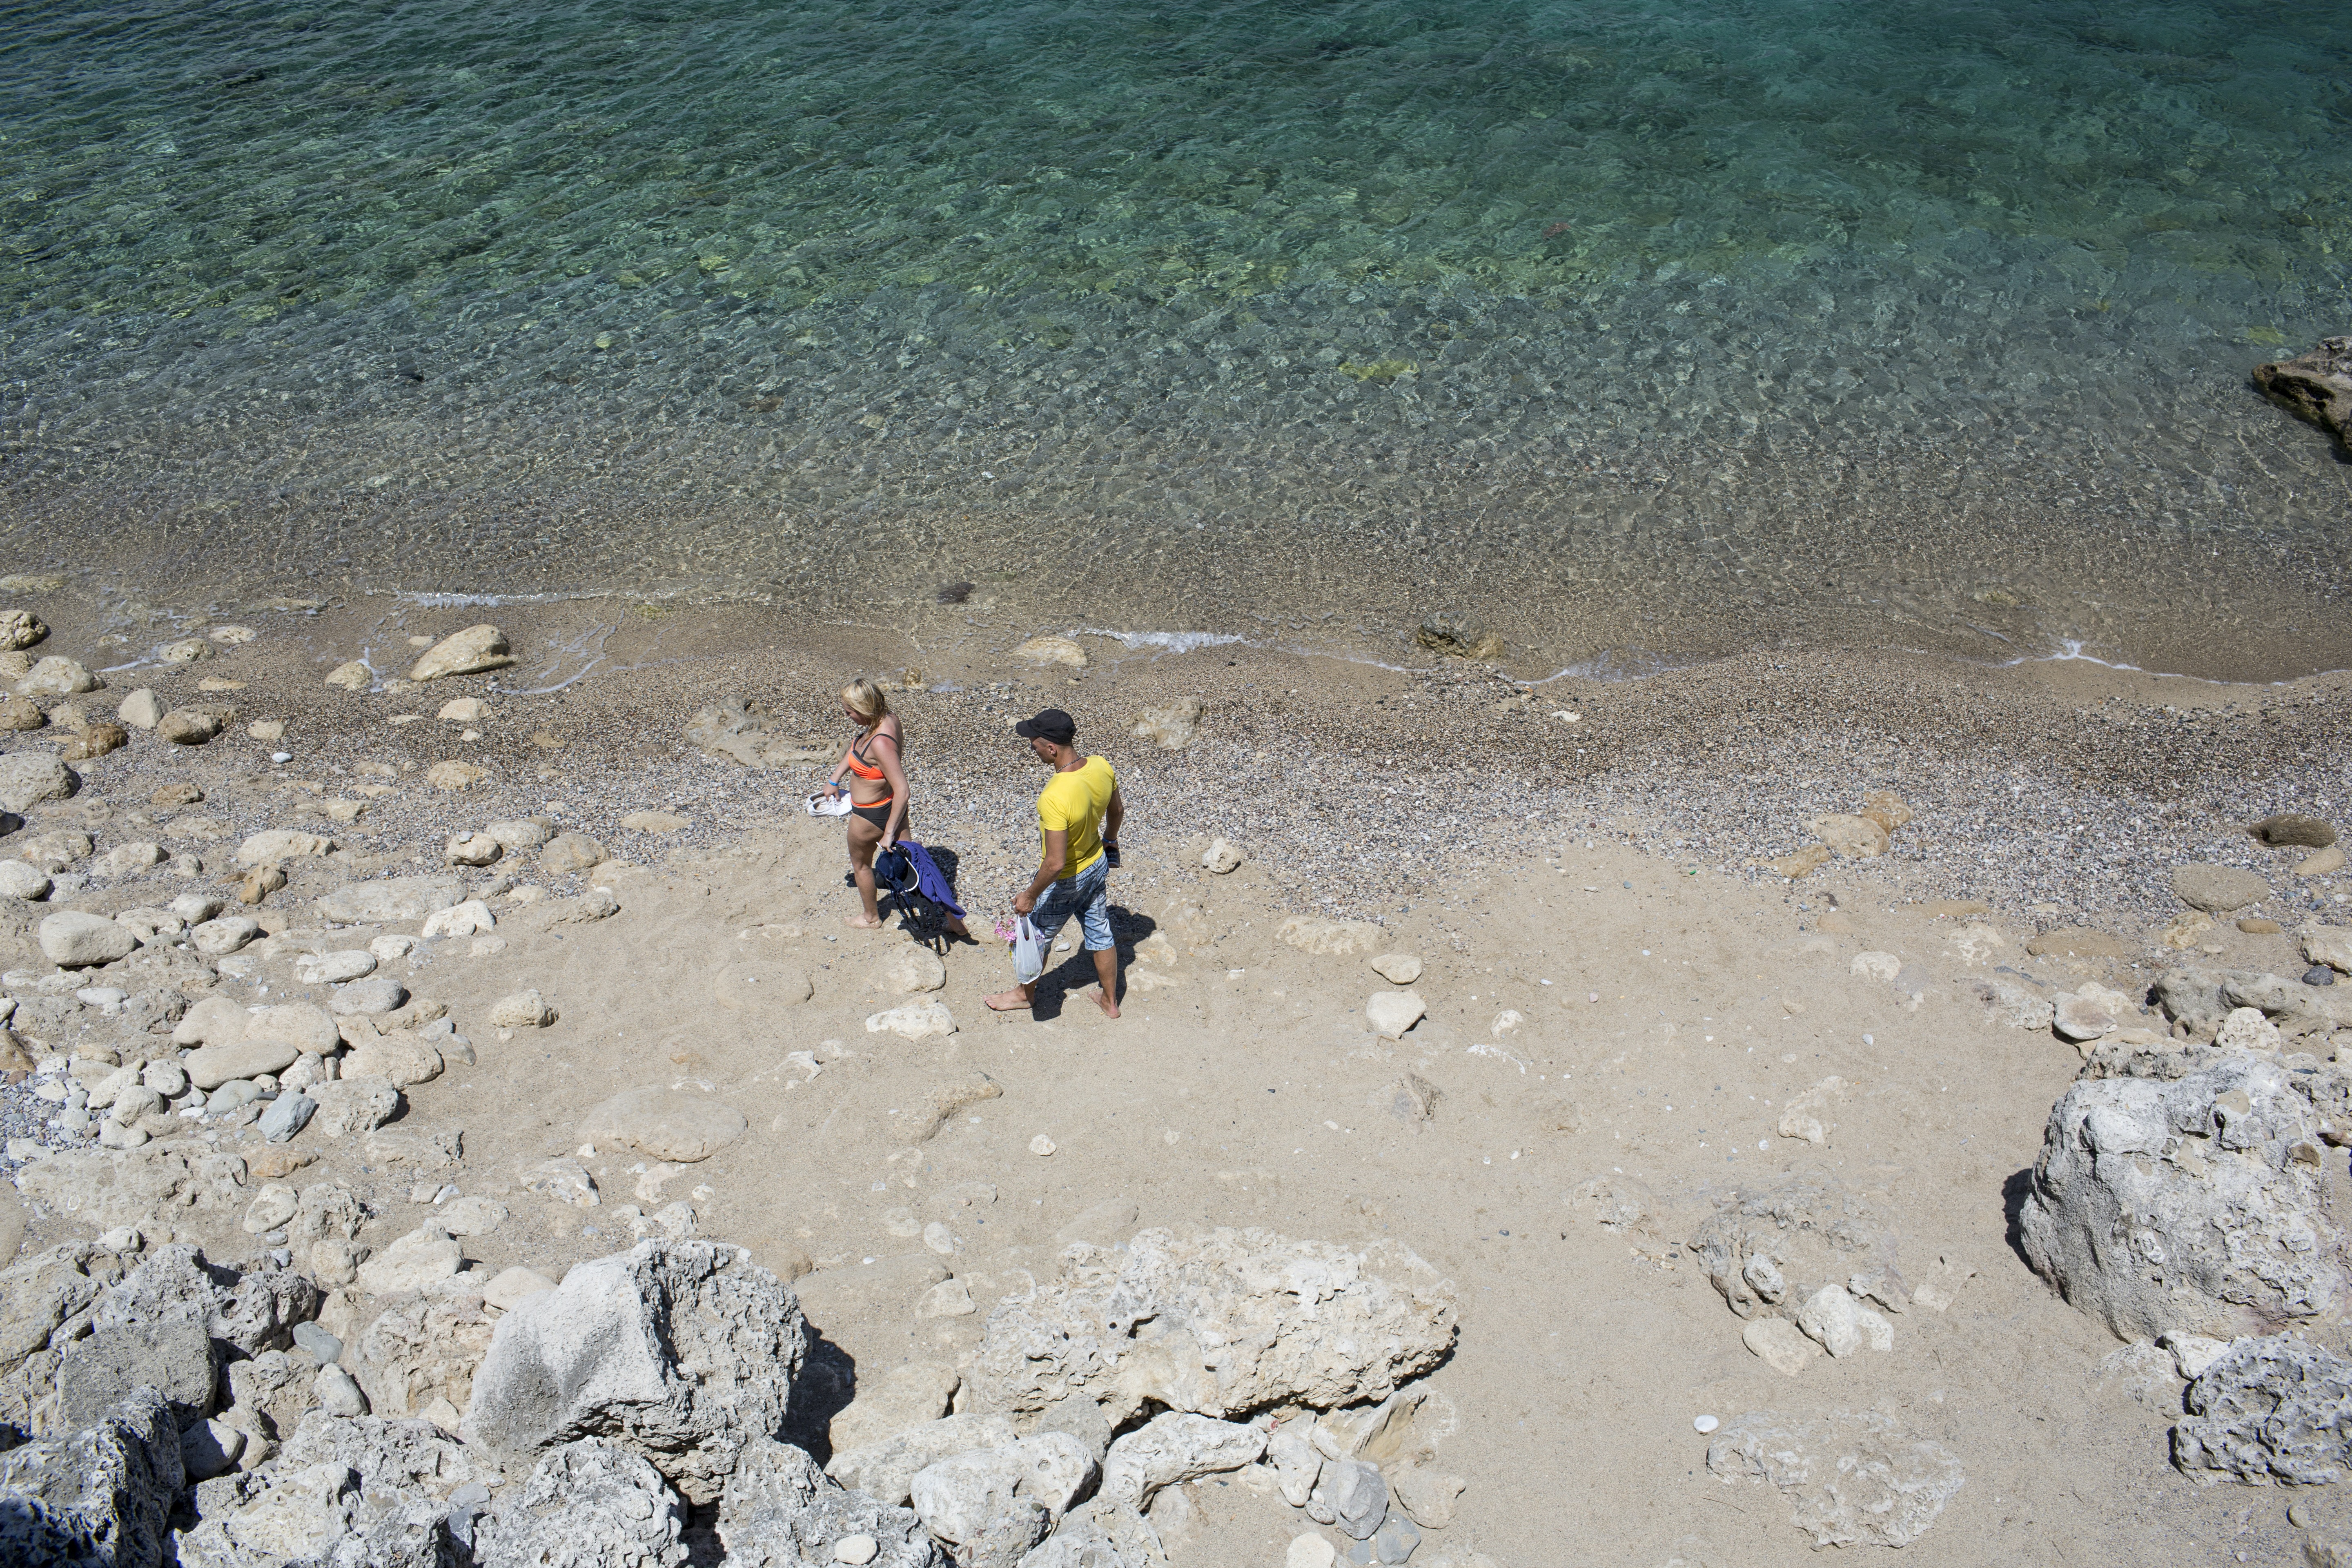 man and woman standing near body of water during daytime